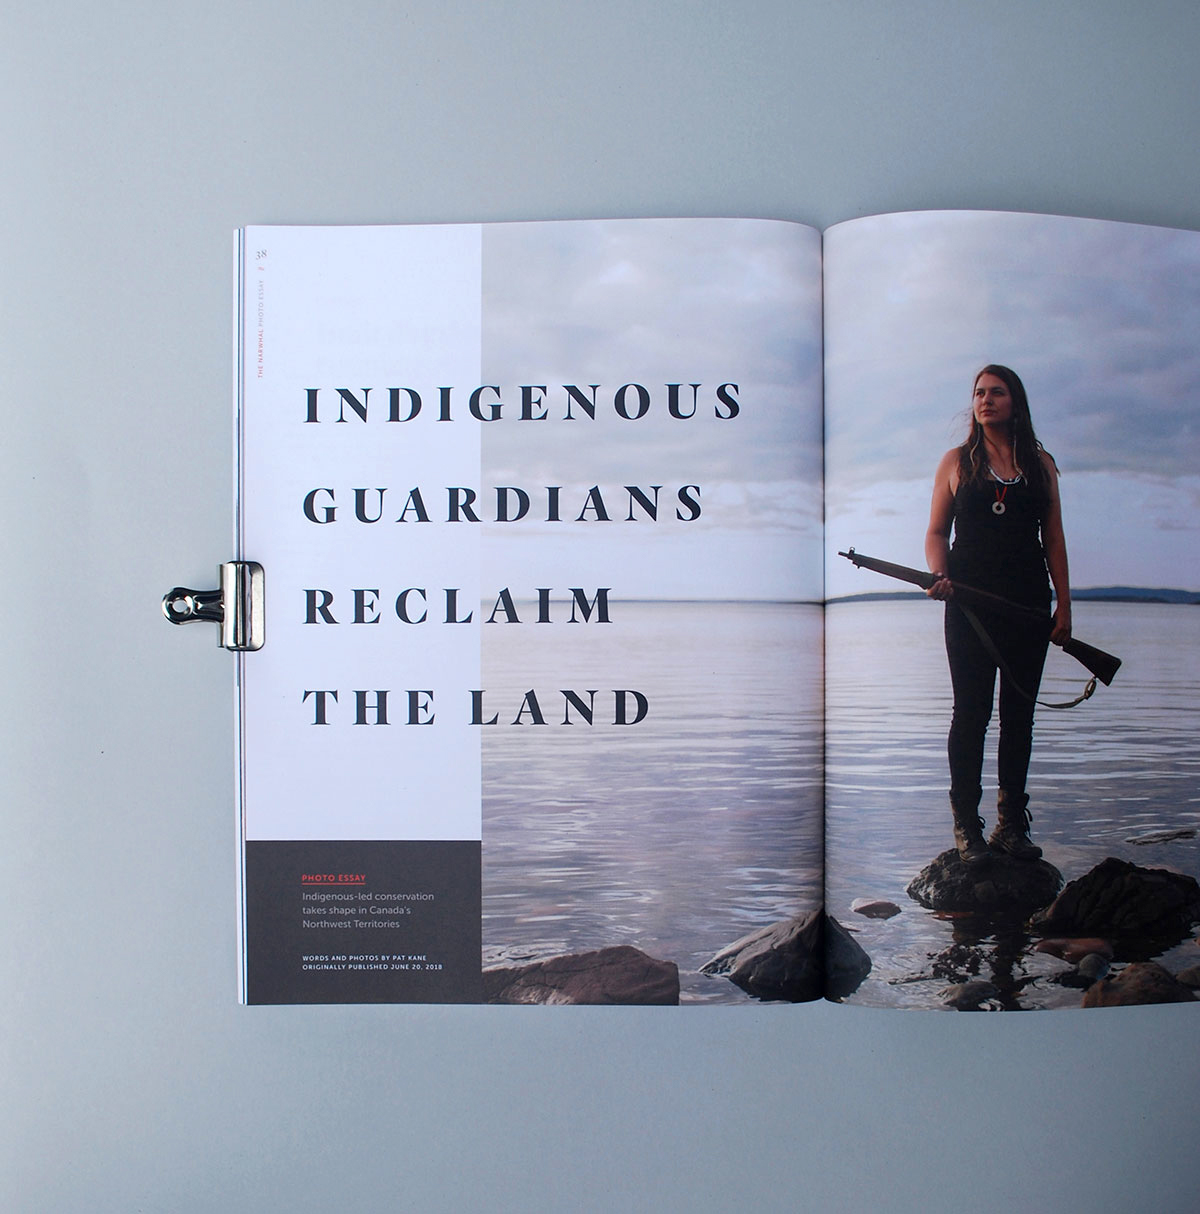 The Narwhal Magazine, photoessay introduction editorial layout design, Indigenous Guardians Reclaim the Land, photography by Pat Kane  | www.alicia-carvalho.com